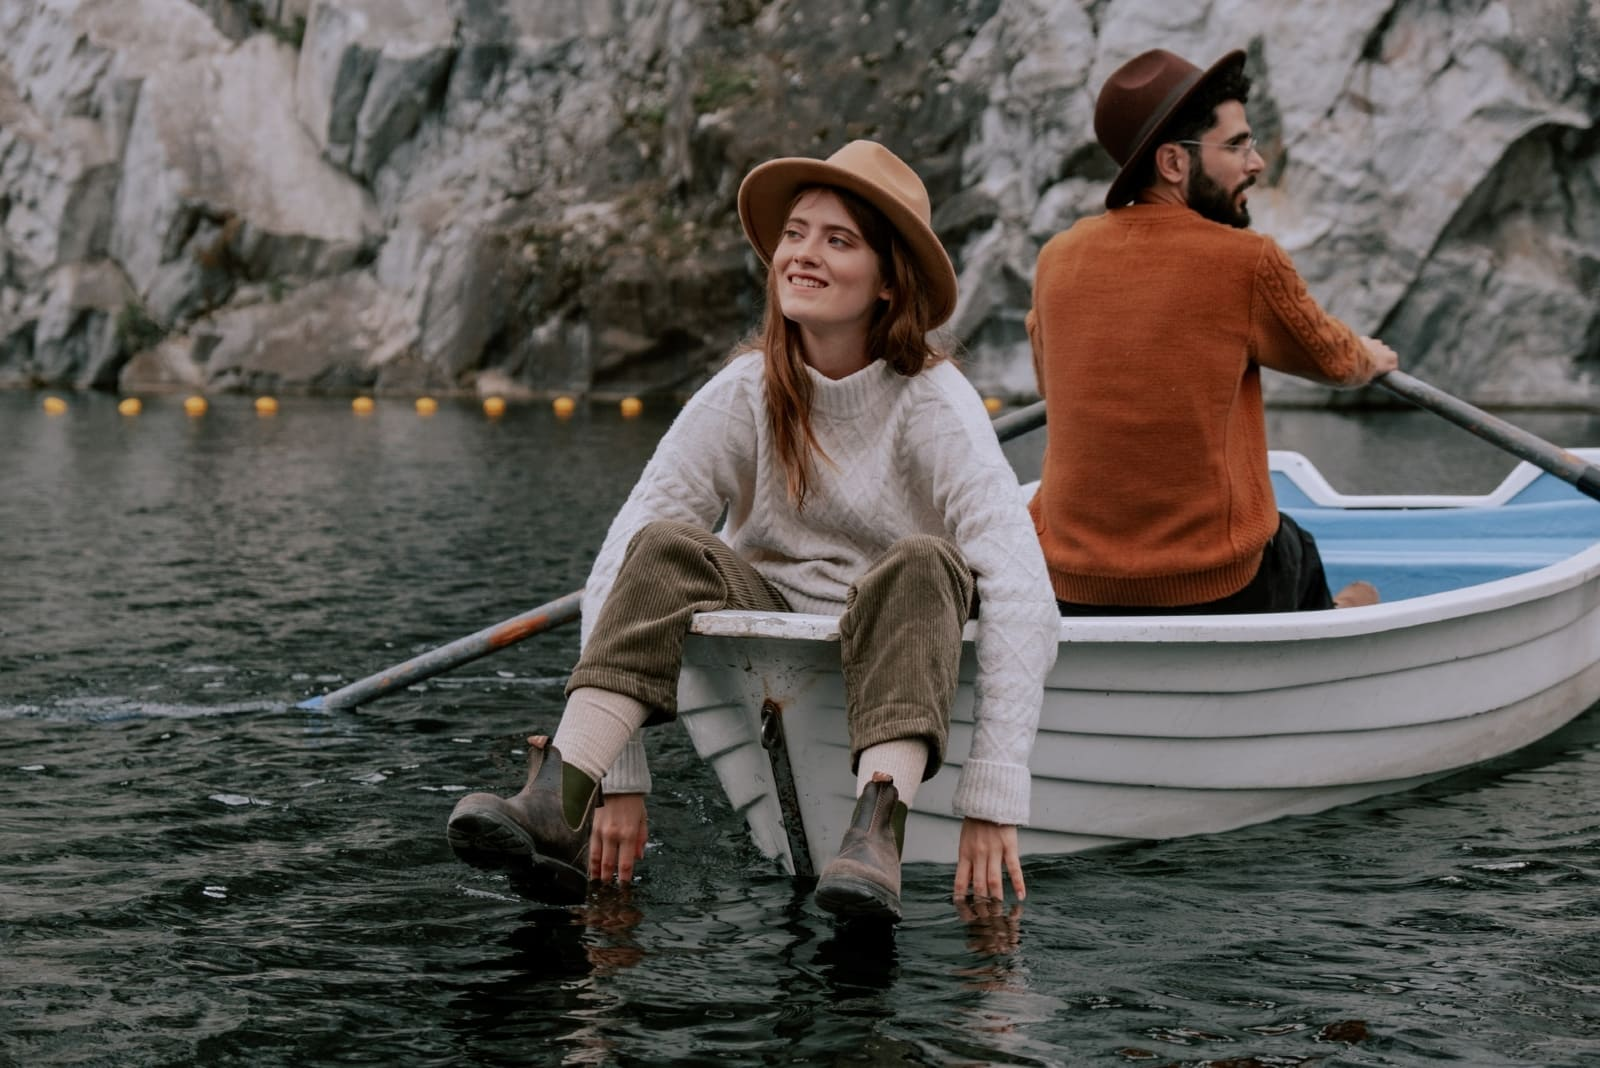 man and woman with hats sitting on boat